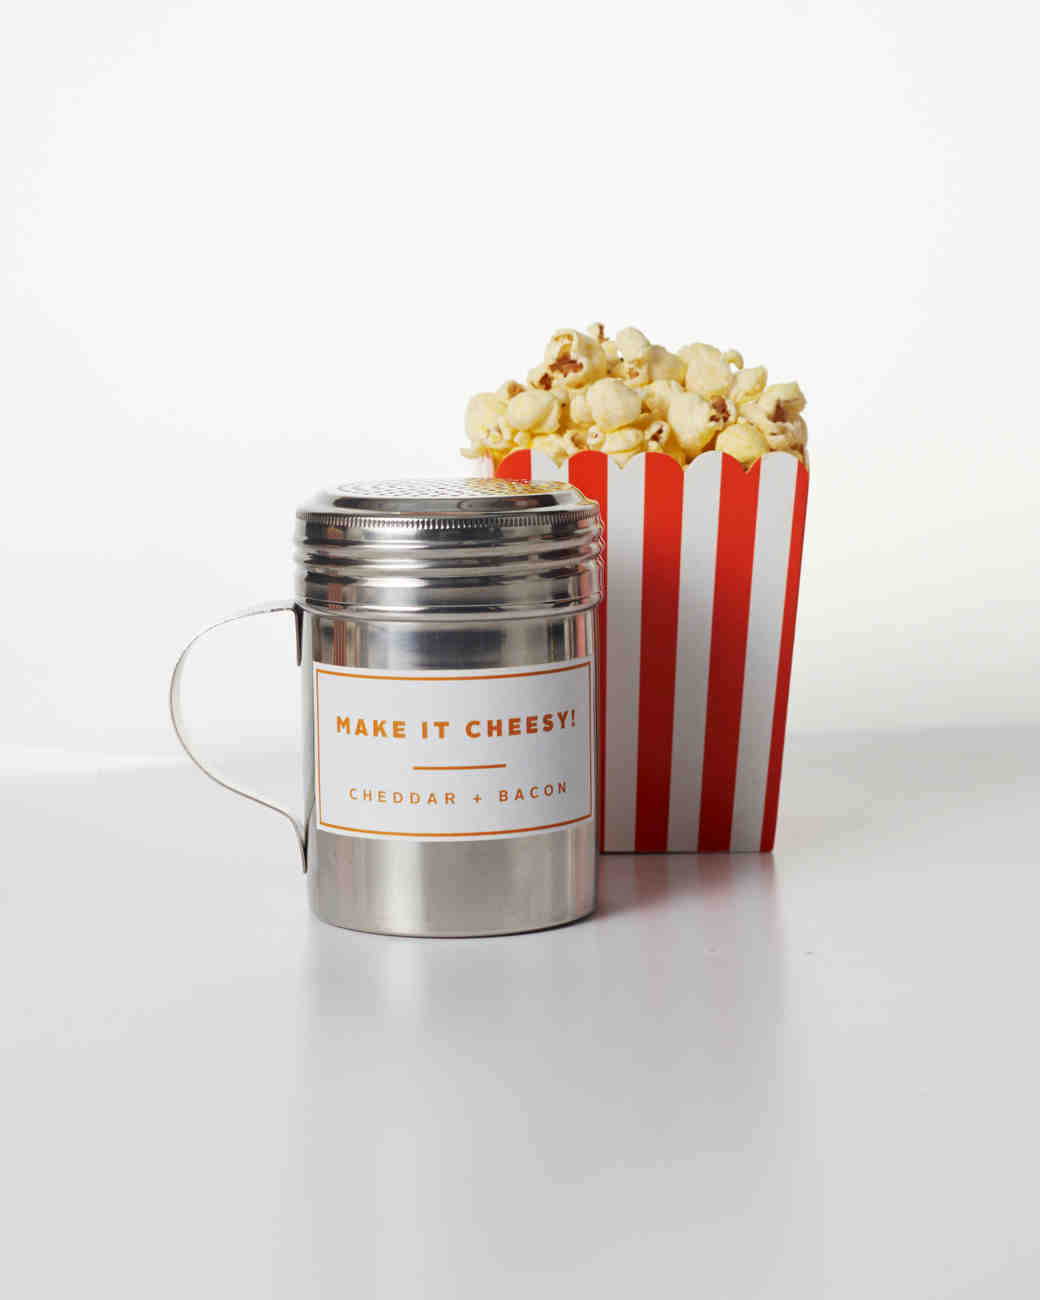 Cheddar and Bacon Popcorn Topping